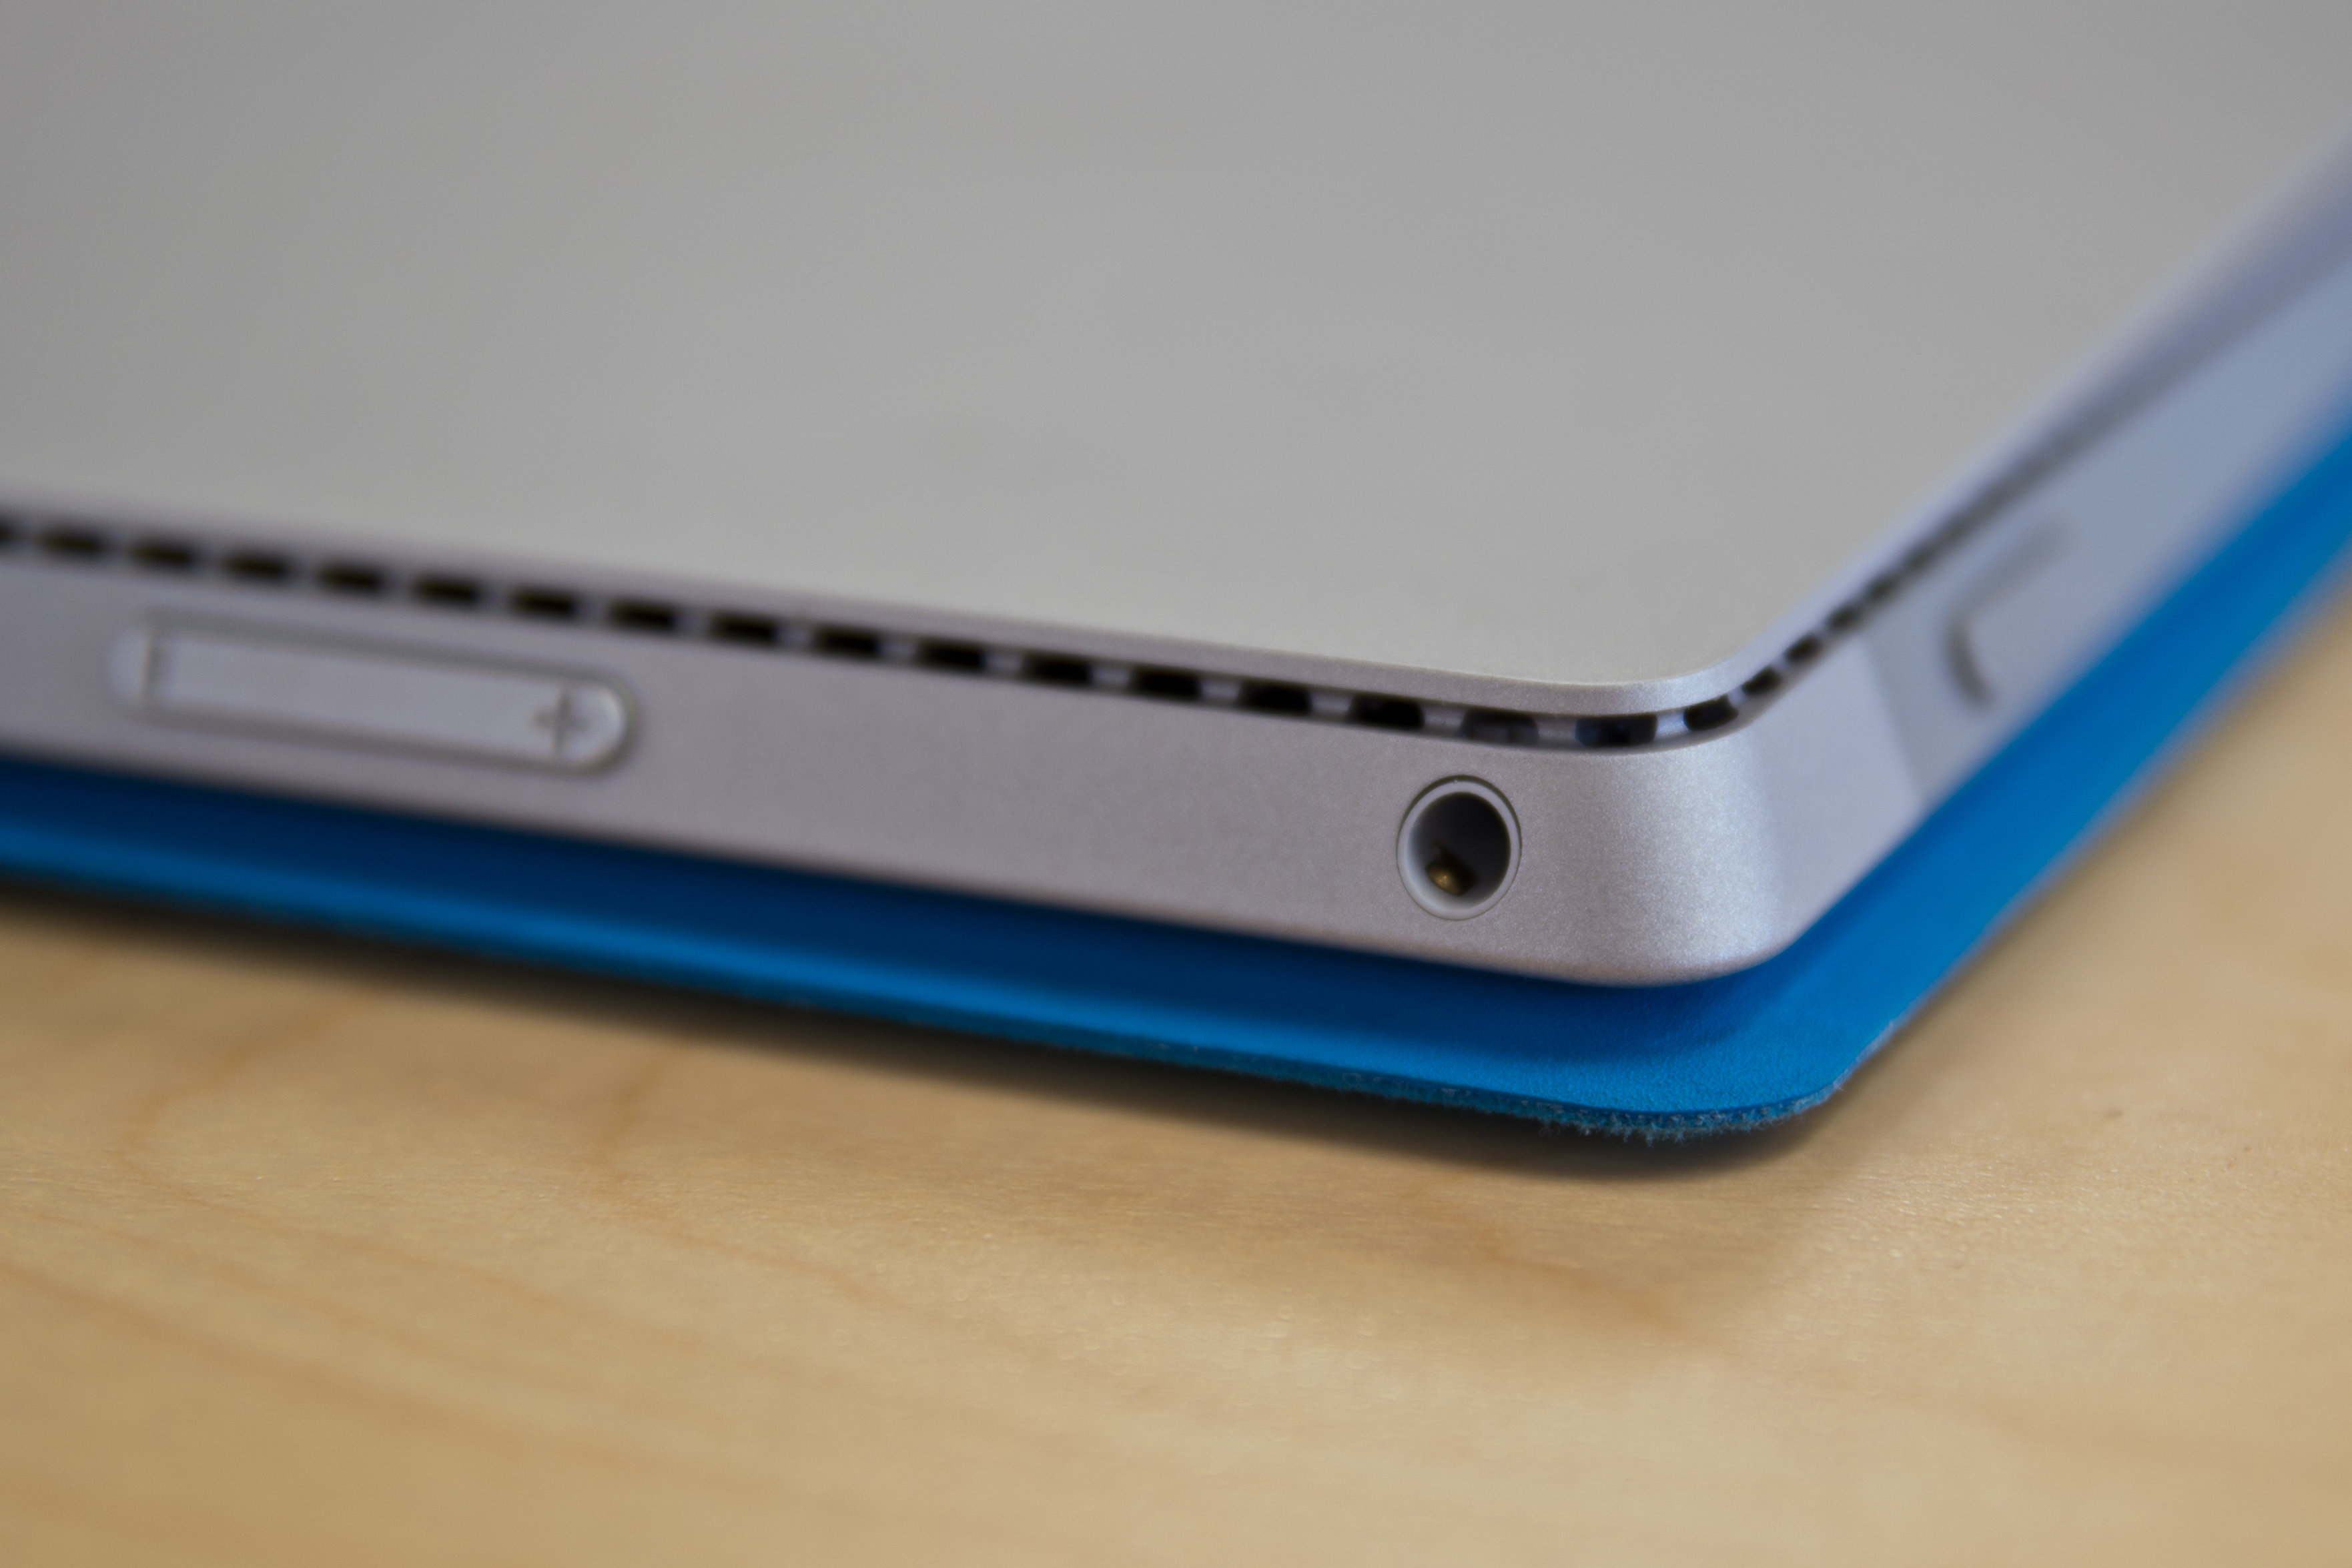 A closer look at the Microsoft Surface Pro 3's headphone jack.